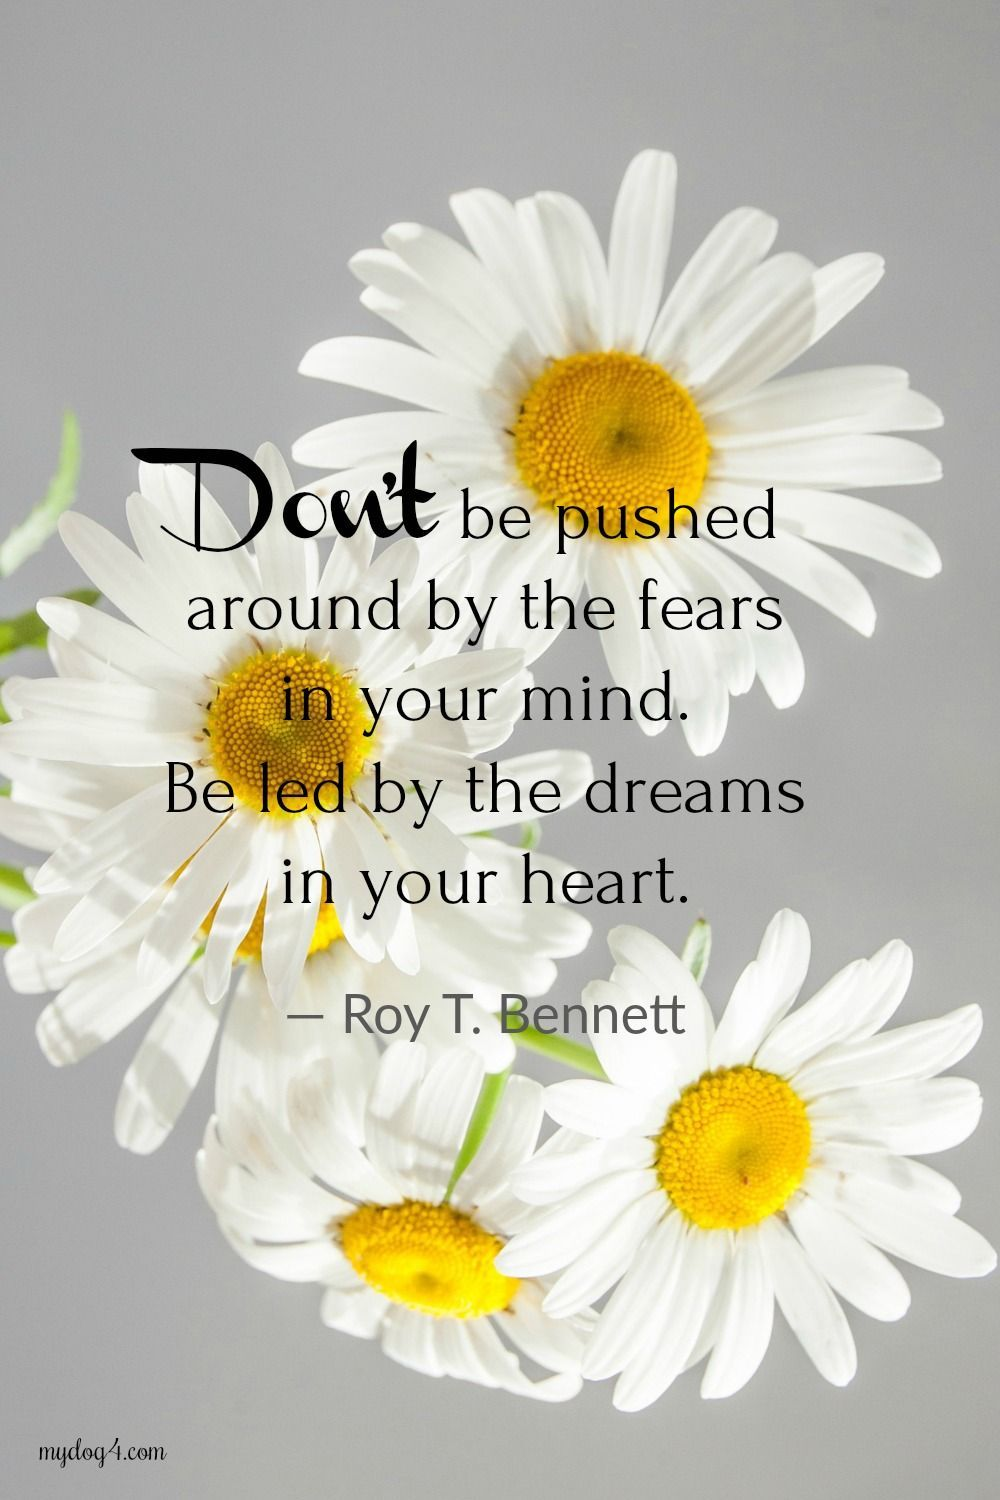 DOG TREATS | Sunflower quotes, Inspirational quotes, Daisy ...